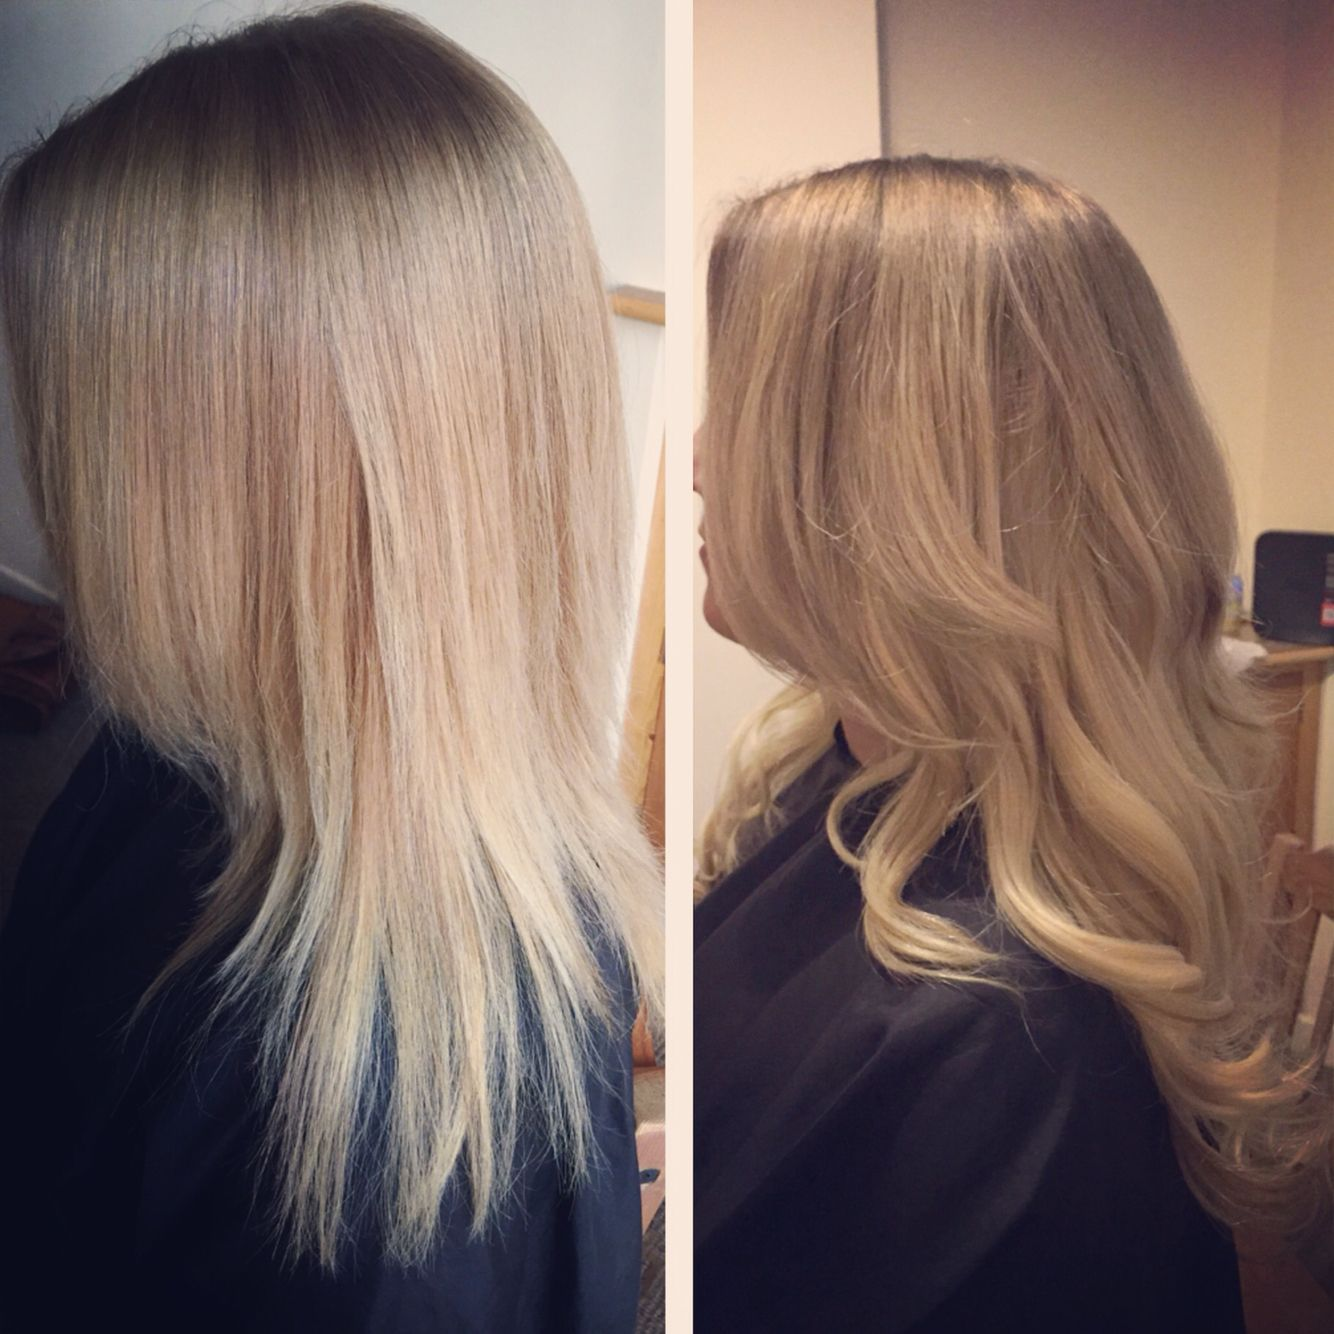 Before And After Balmain Hair Extensions 200 Bonds Used Hair